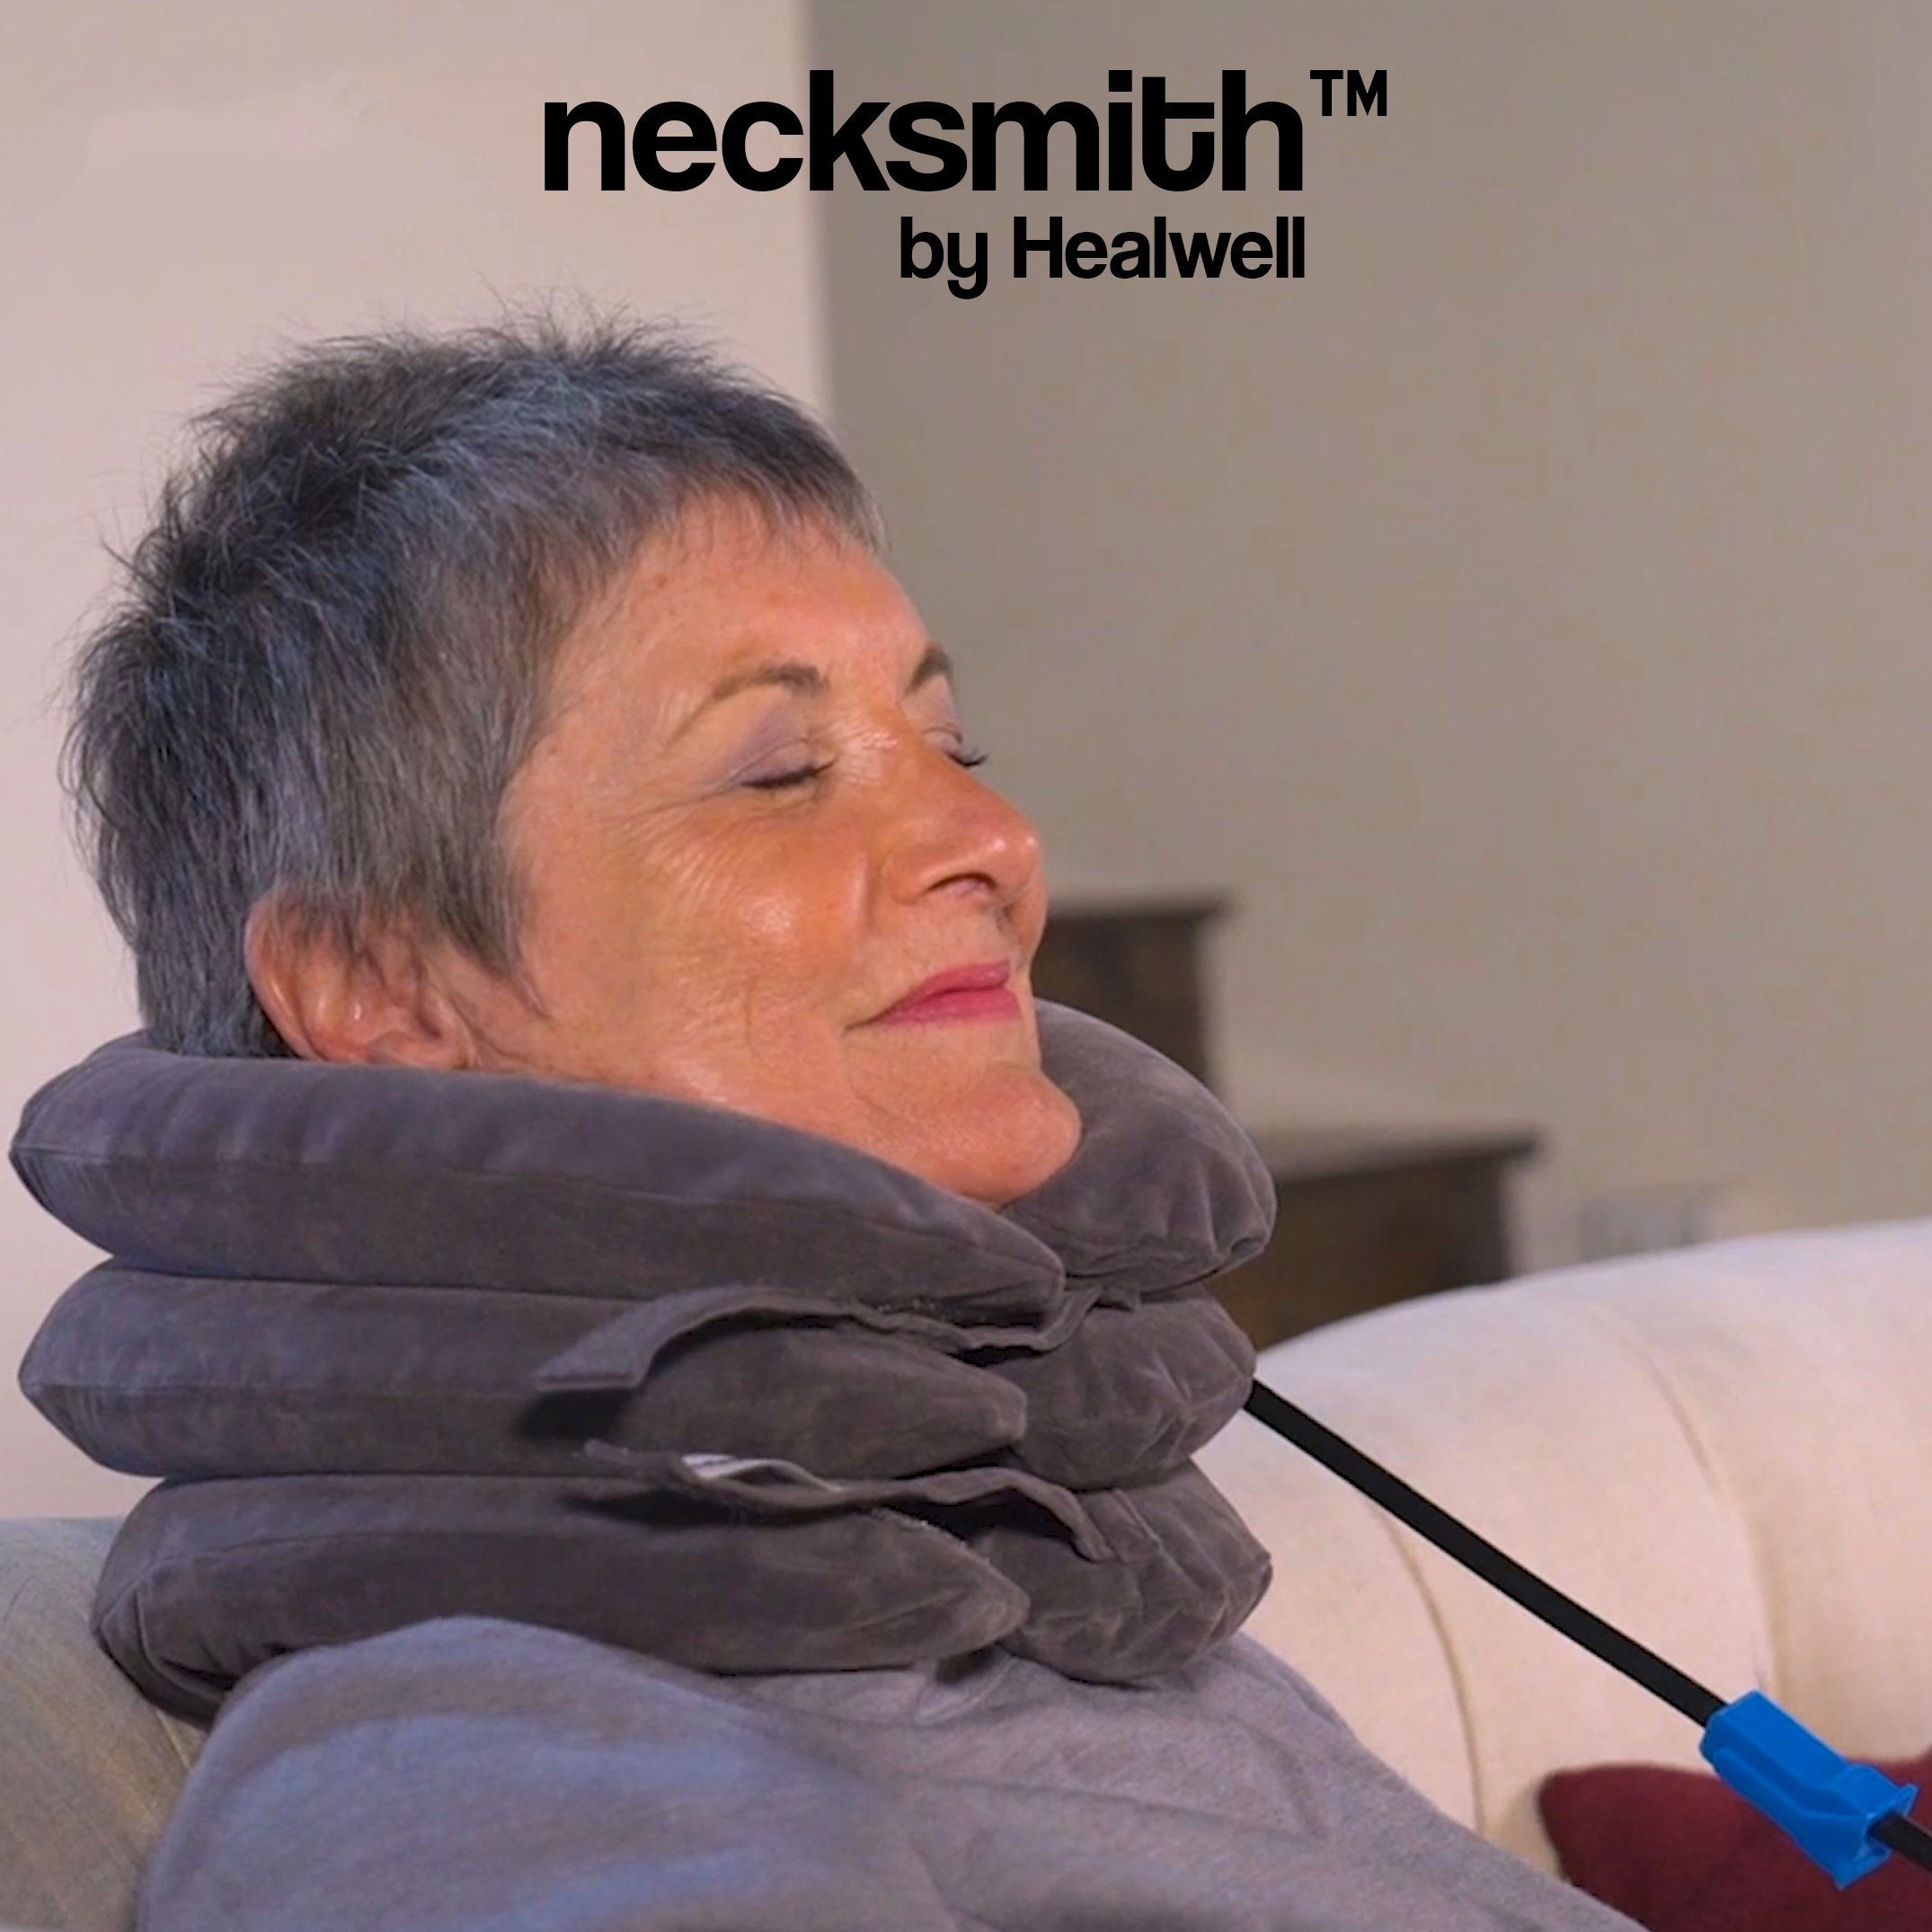 Necksmith™ Cervical Neck Traction Travel Pillow Device & Adjustable Neck Device Collar for Pain Relief and Support with FREE Neck Extensions